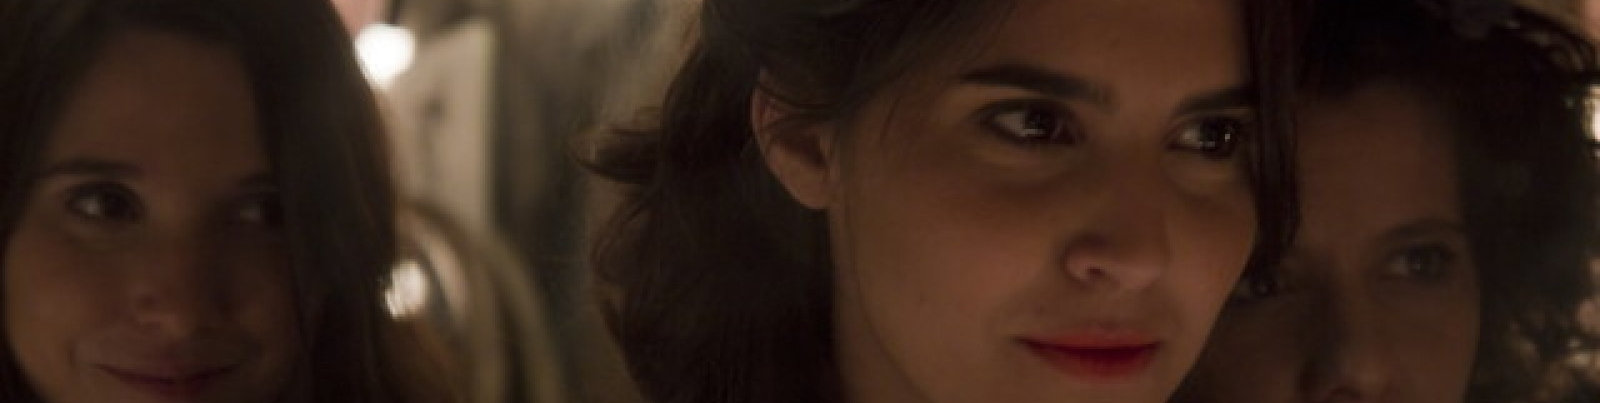 """Thursday, February 27, 7pm – Q&A with filmmaker VIOLA  (Matías Piñeiro, Argentina, 2012, 65 min. In Spanish with English subtitles) Winner – Best Fiction Film  Directed by Matías Piñeiro, one of Argentina's most sensuous and daring new voices, Viola is a mystery of romantic entanglements and intrigues among a troupe of young actors in a small theater in Buenos Aires performing Shakespeare's """"Twelfth Night."""" Acclaimed by the New York Times' Manohla Dargis as """"a triumph of narrative imagination and bottom-line ingenuity,"""" the film landed on several top best lists of the year."""